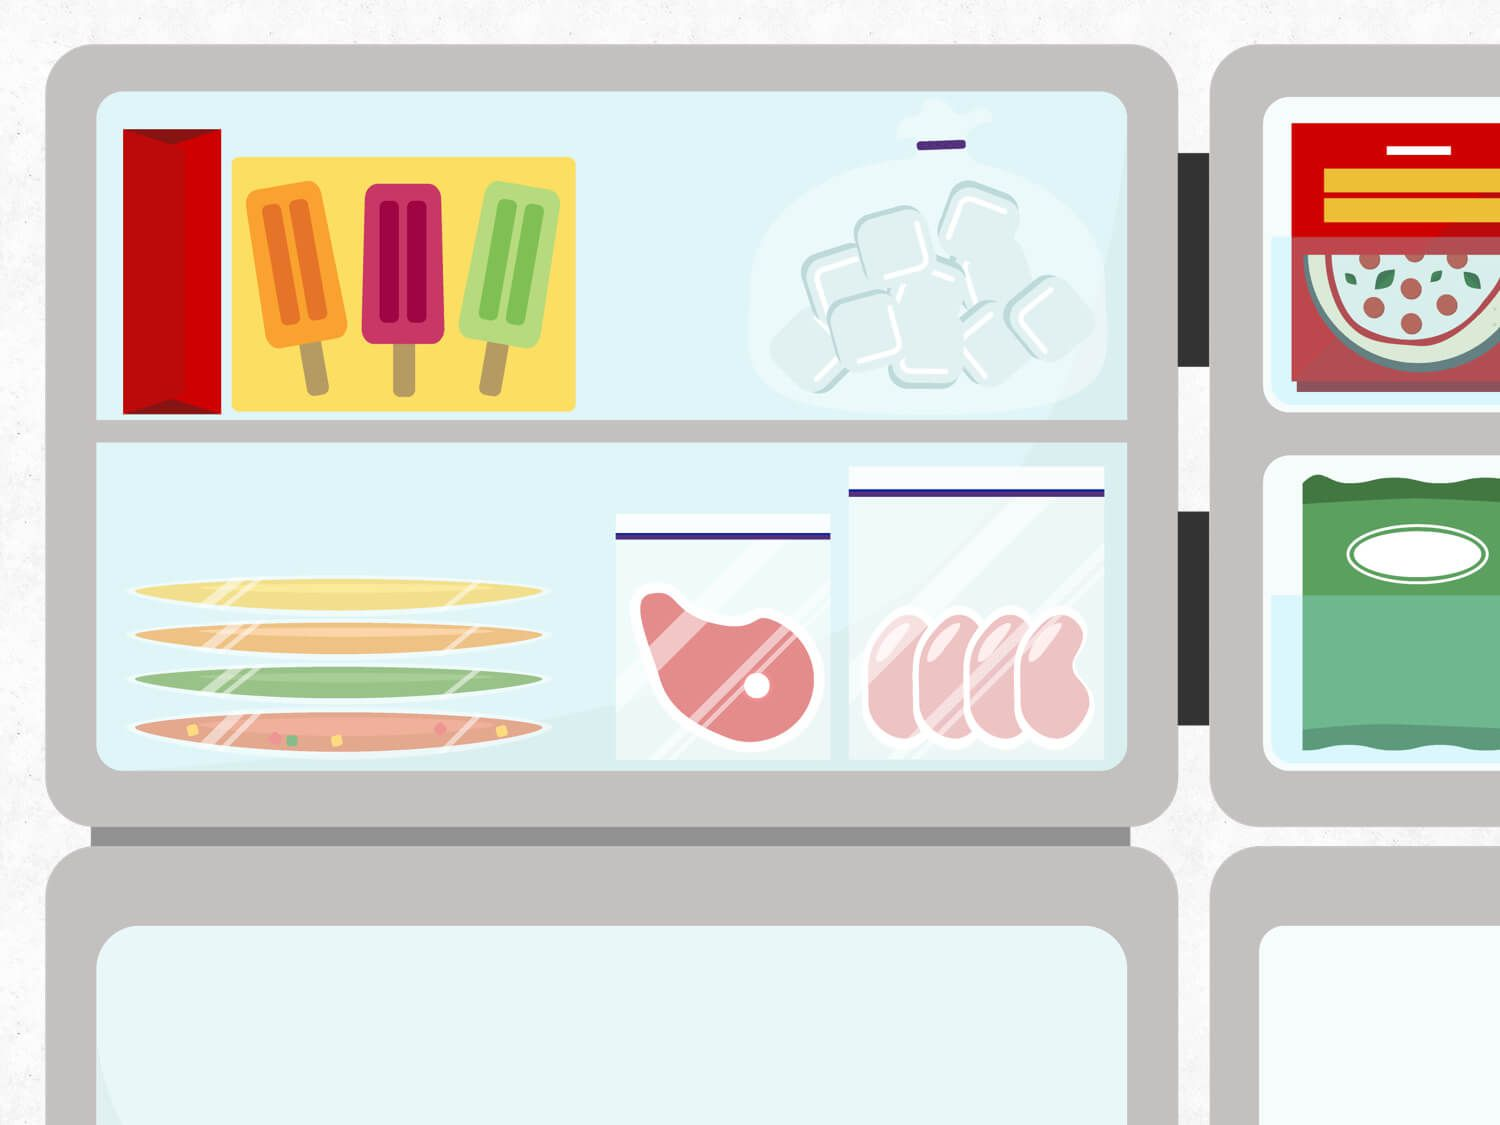 Graphic illustration of the freezer shelves in a refrigerator, holding frozen meats, flat-frozen items in bags, popsicles, and packaged foods